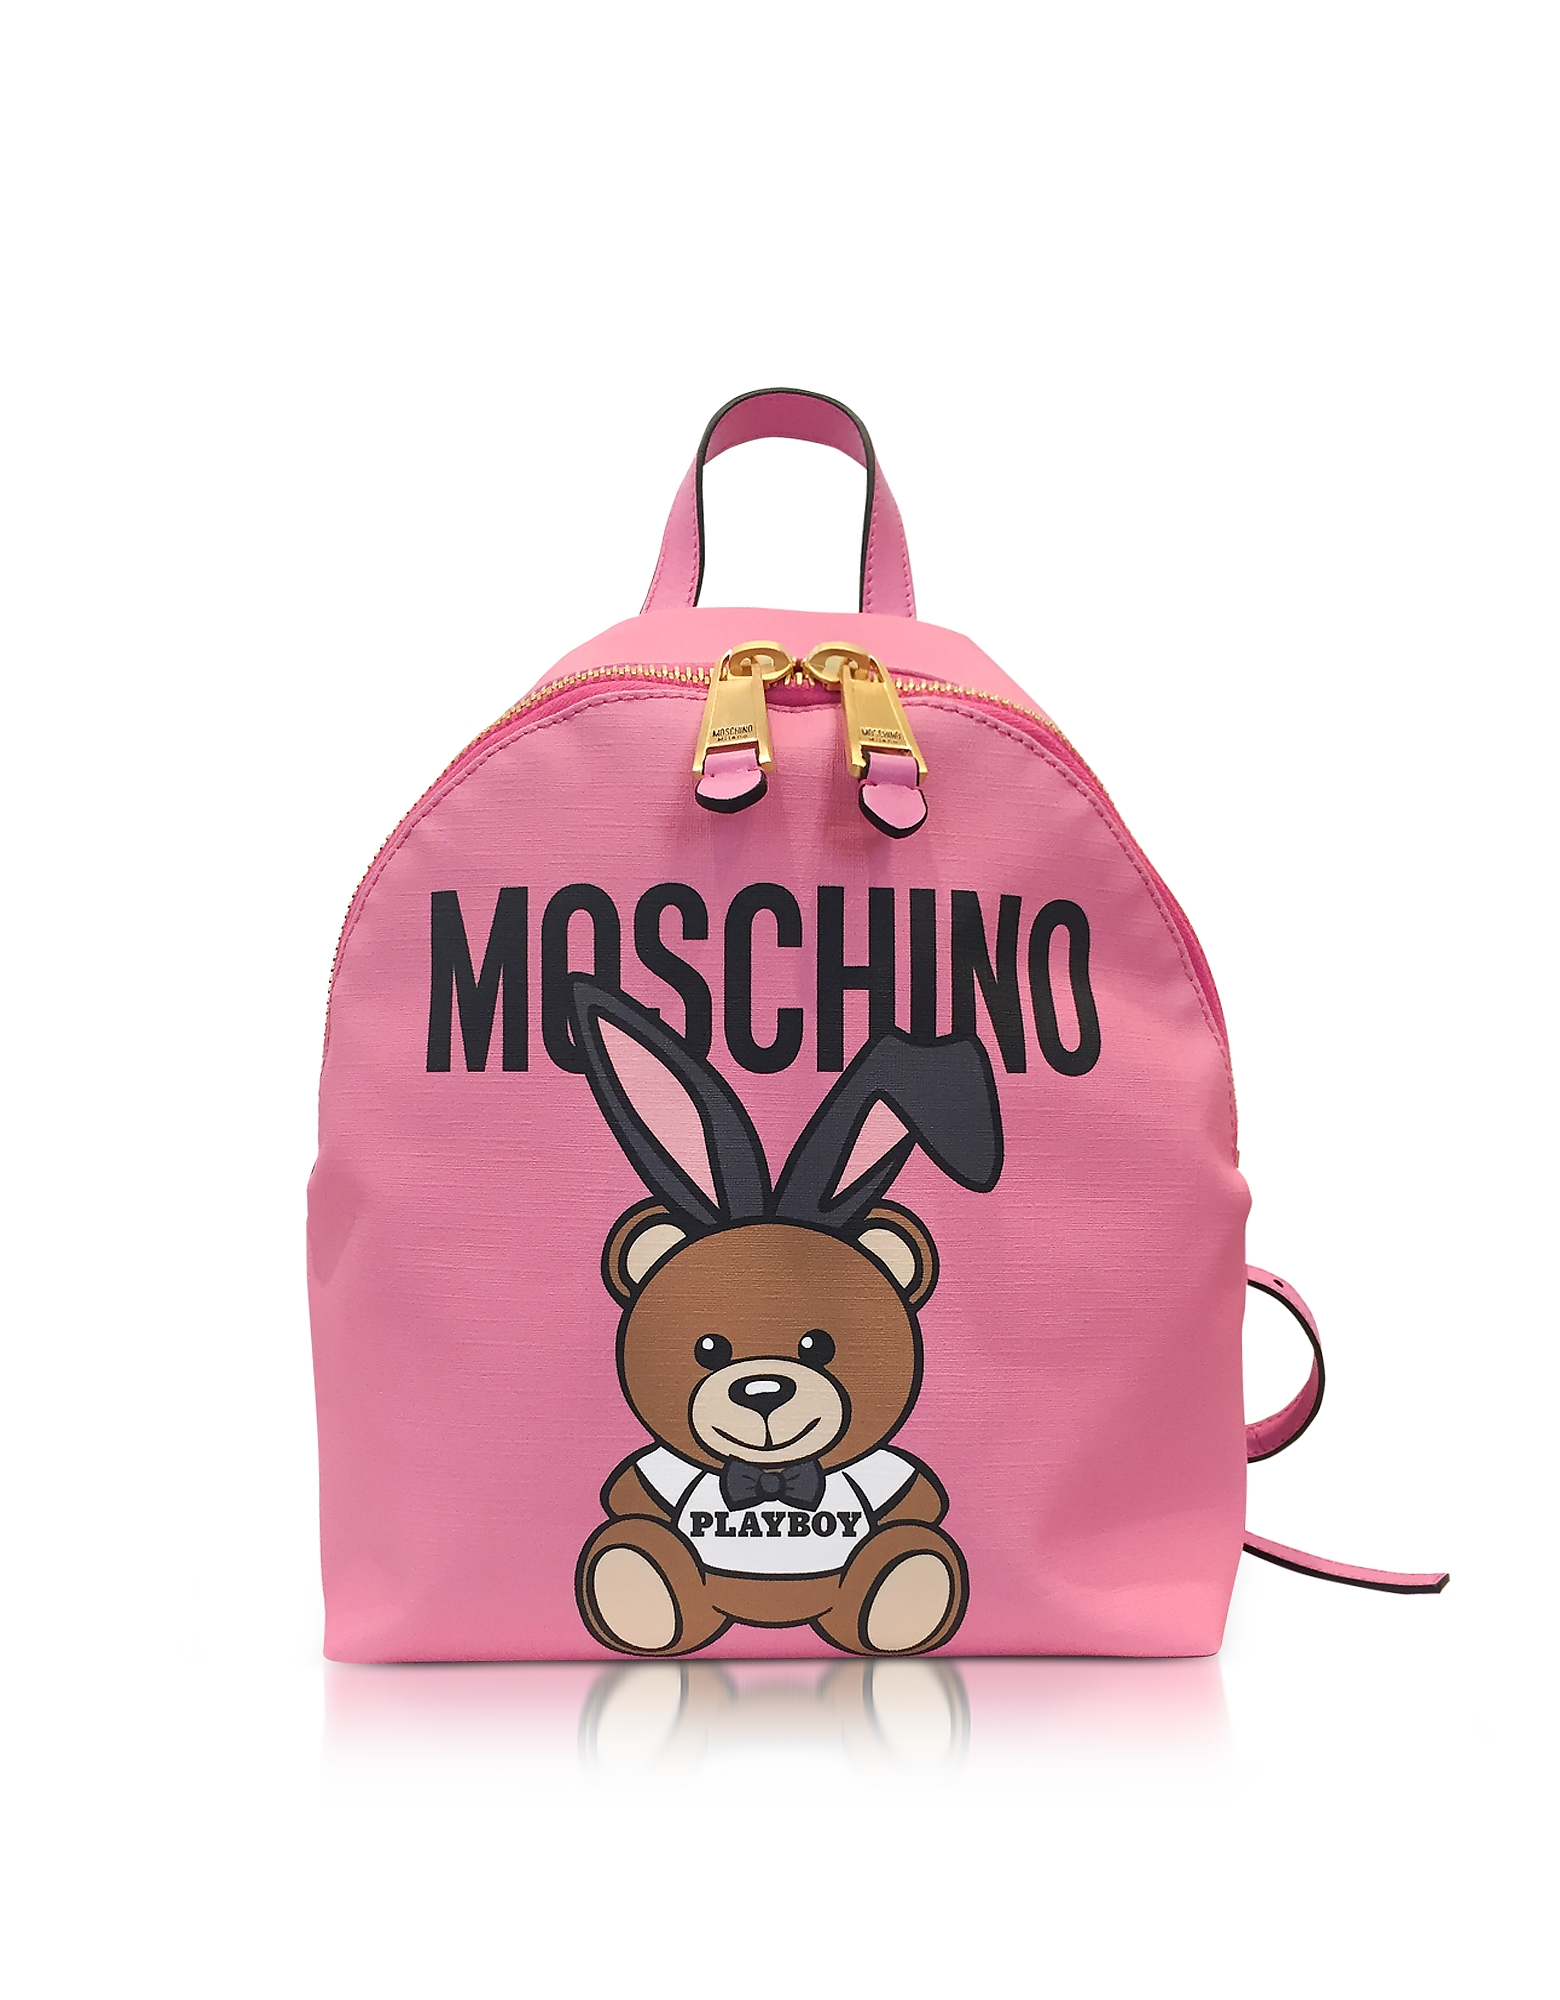 Moschino Handbags, Teddy Playboy Pink Print Nylon Backpack w/Logo